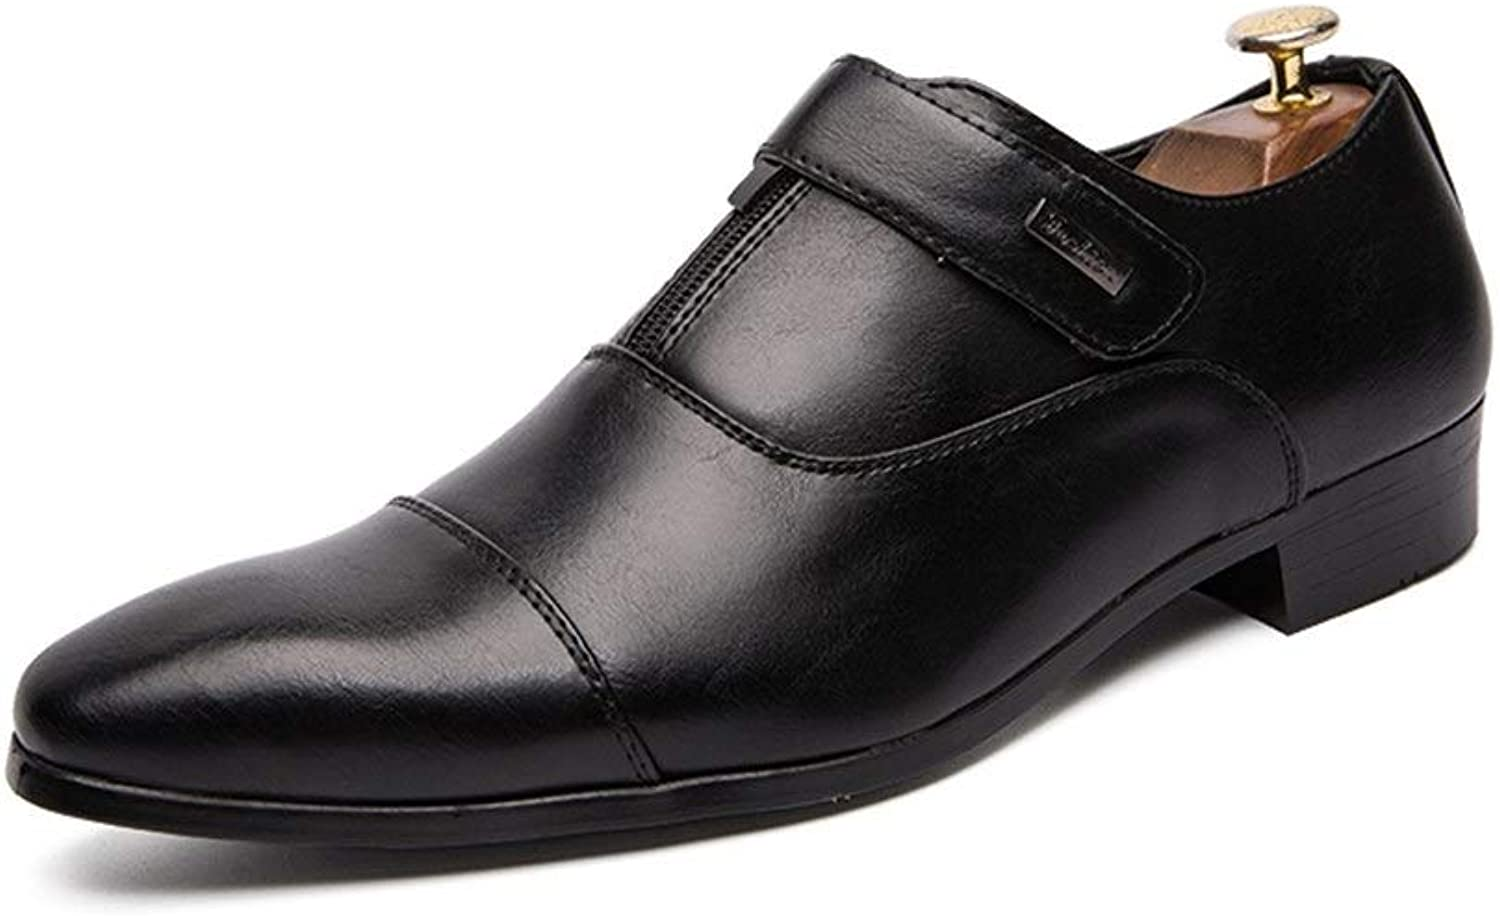 Easy Go Shopping Fashion Oxford for Men Casual shoes Comfortable OX Leather Slip On Style Simple Convenient Hook&Loop Round Toe classic Cricket shoes (color   Black, Size   8.5 UK)